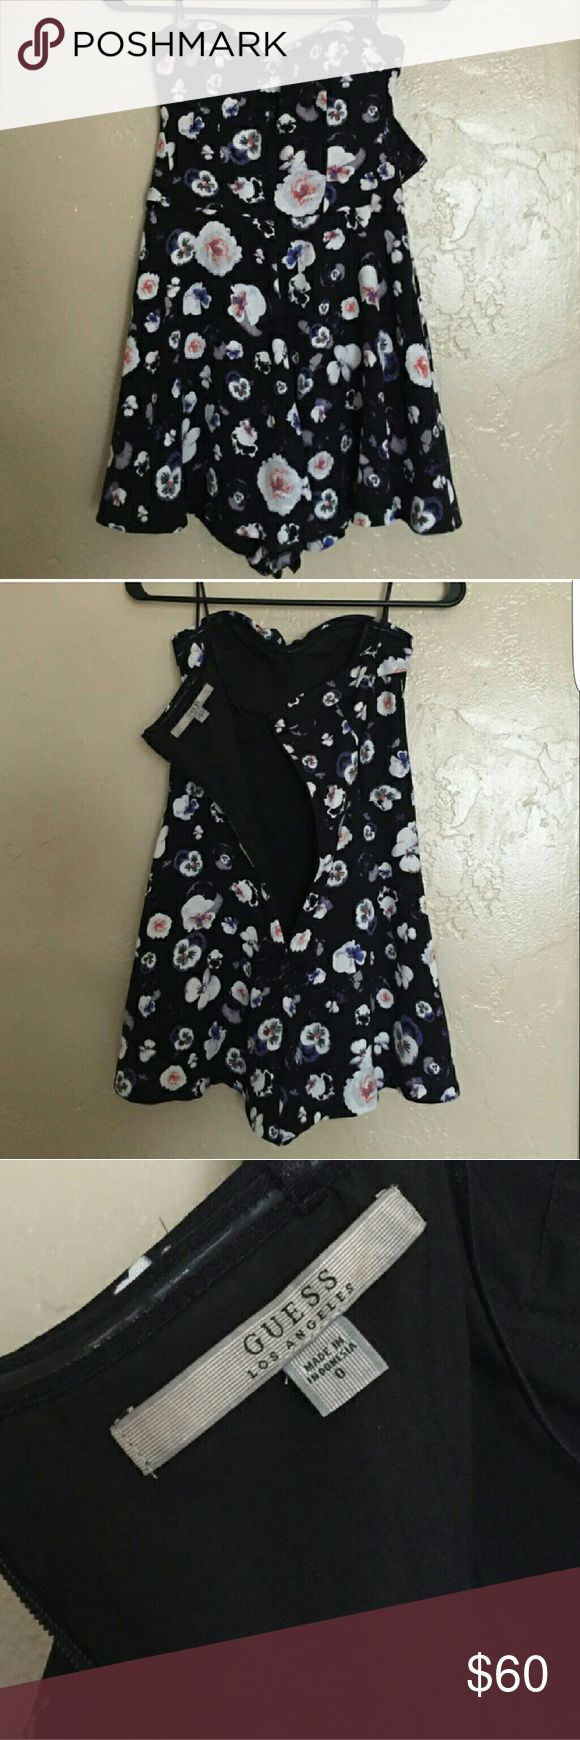 Guess Romper Black & Floral This romper is so cute!!! I purchased from a fellow posher and it fits perfectly except for the bra cup size. I would recommend for a full A cup or B cup (I'm barely an A). This is a serious steal - no flaws.   Zips in the back and comes with straps. Built in cups so there's no need for a bra! Guess Dresses Mini